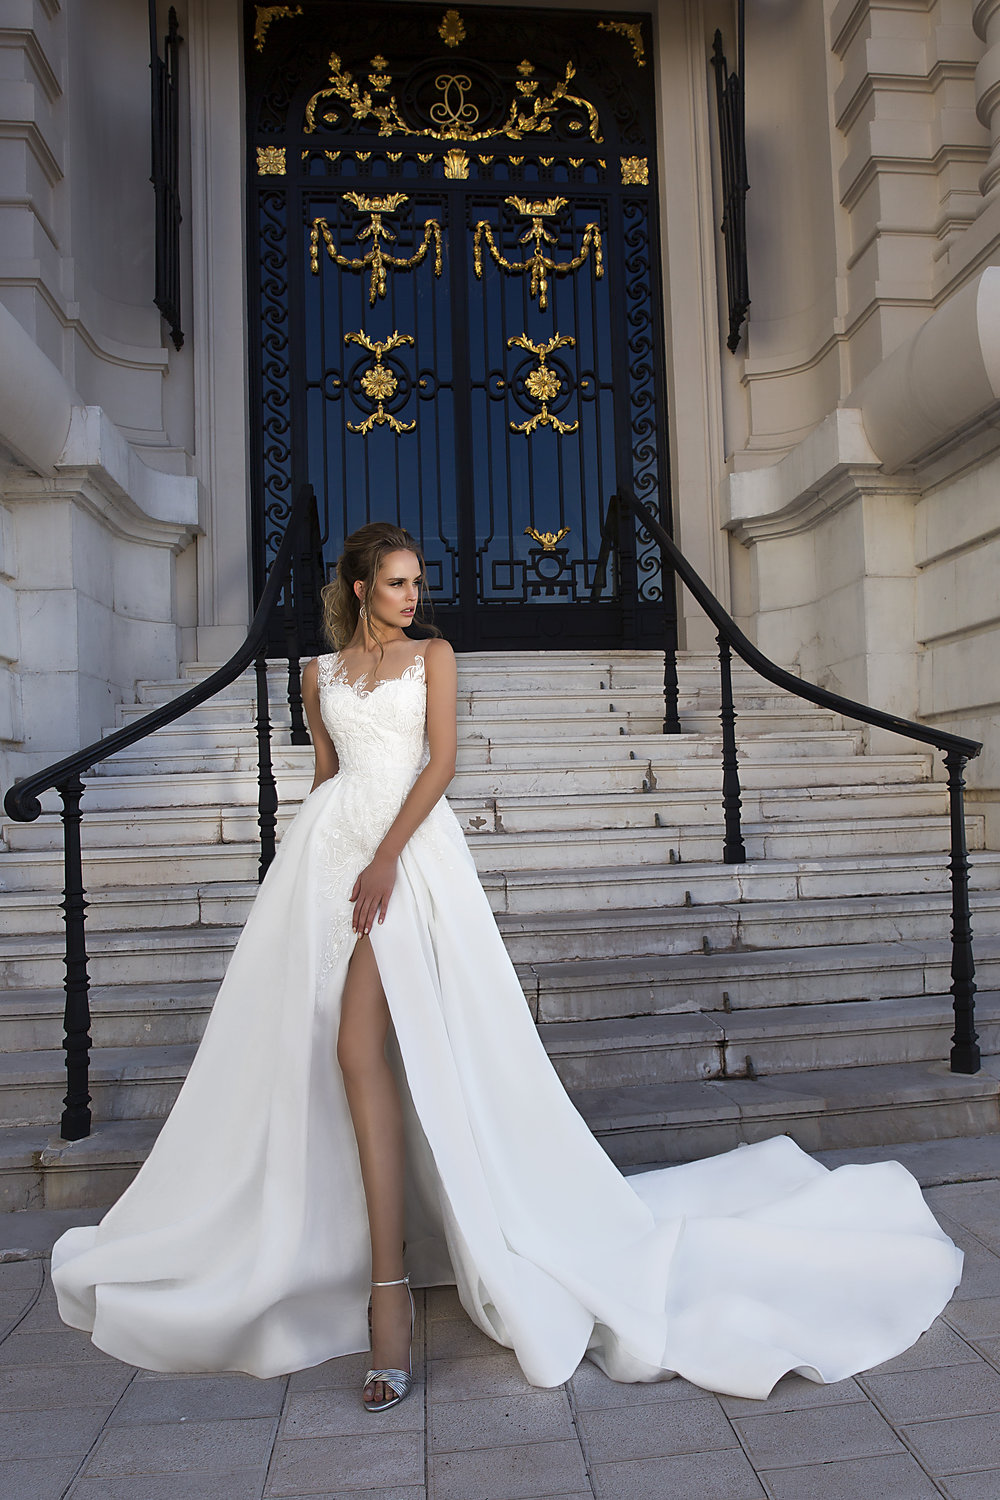 ANASTASIA wedding dress by TINA VALERDI